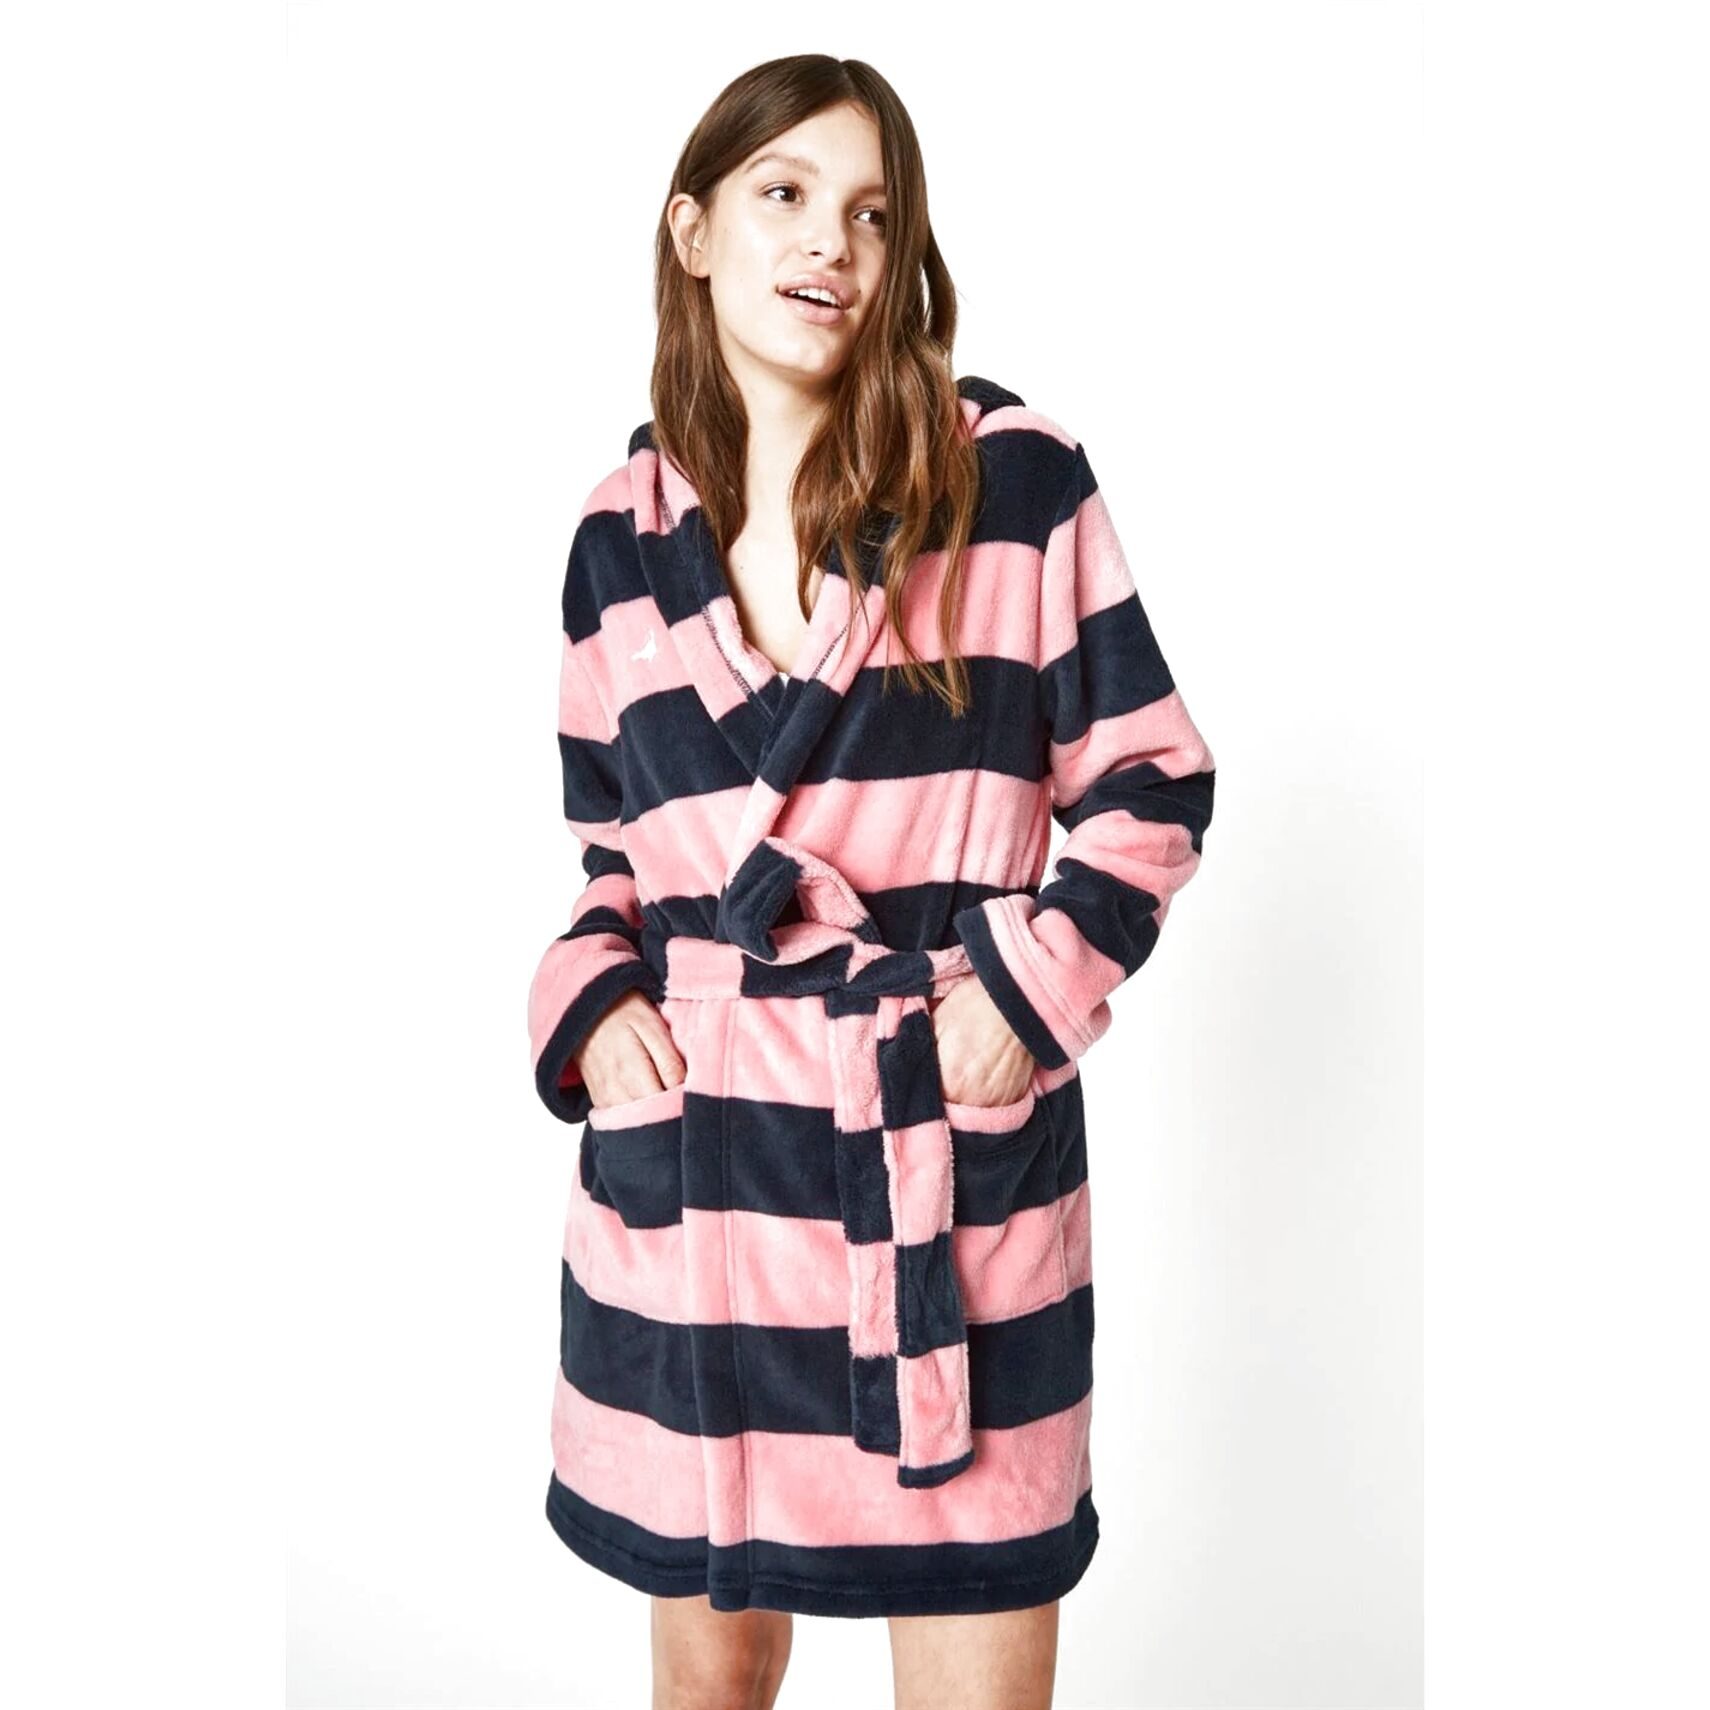 jack wills dressing gown for sale